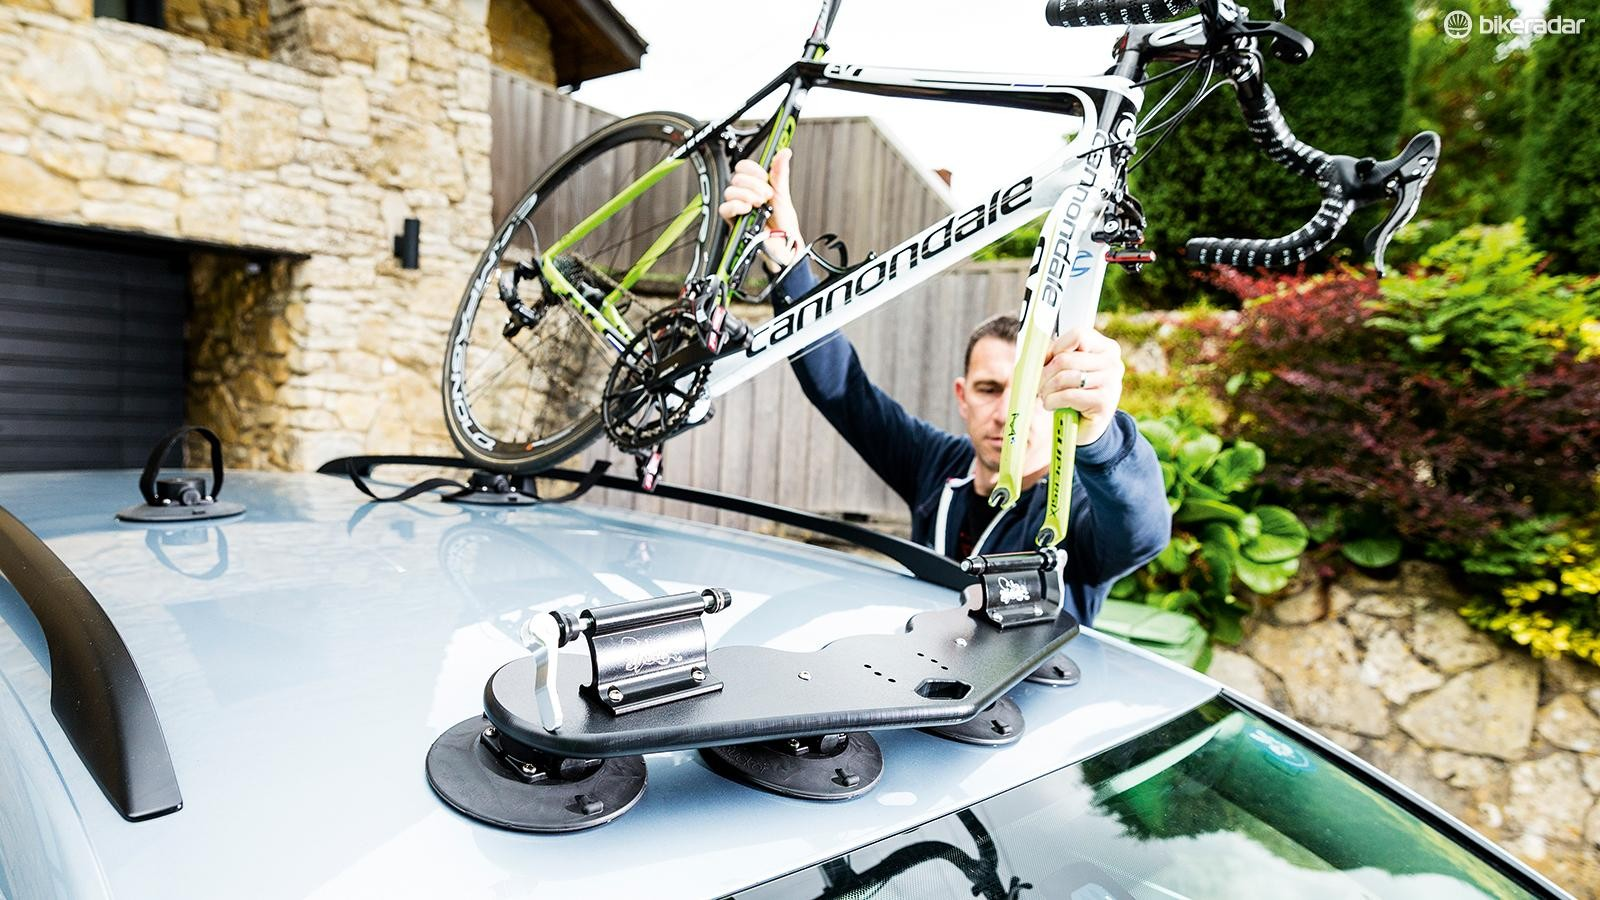 SeaSucker's Mini Bomber roof rack is an ingenious and versatile bike-hauler